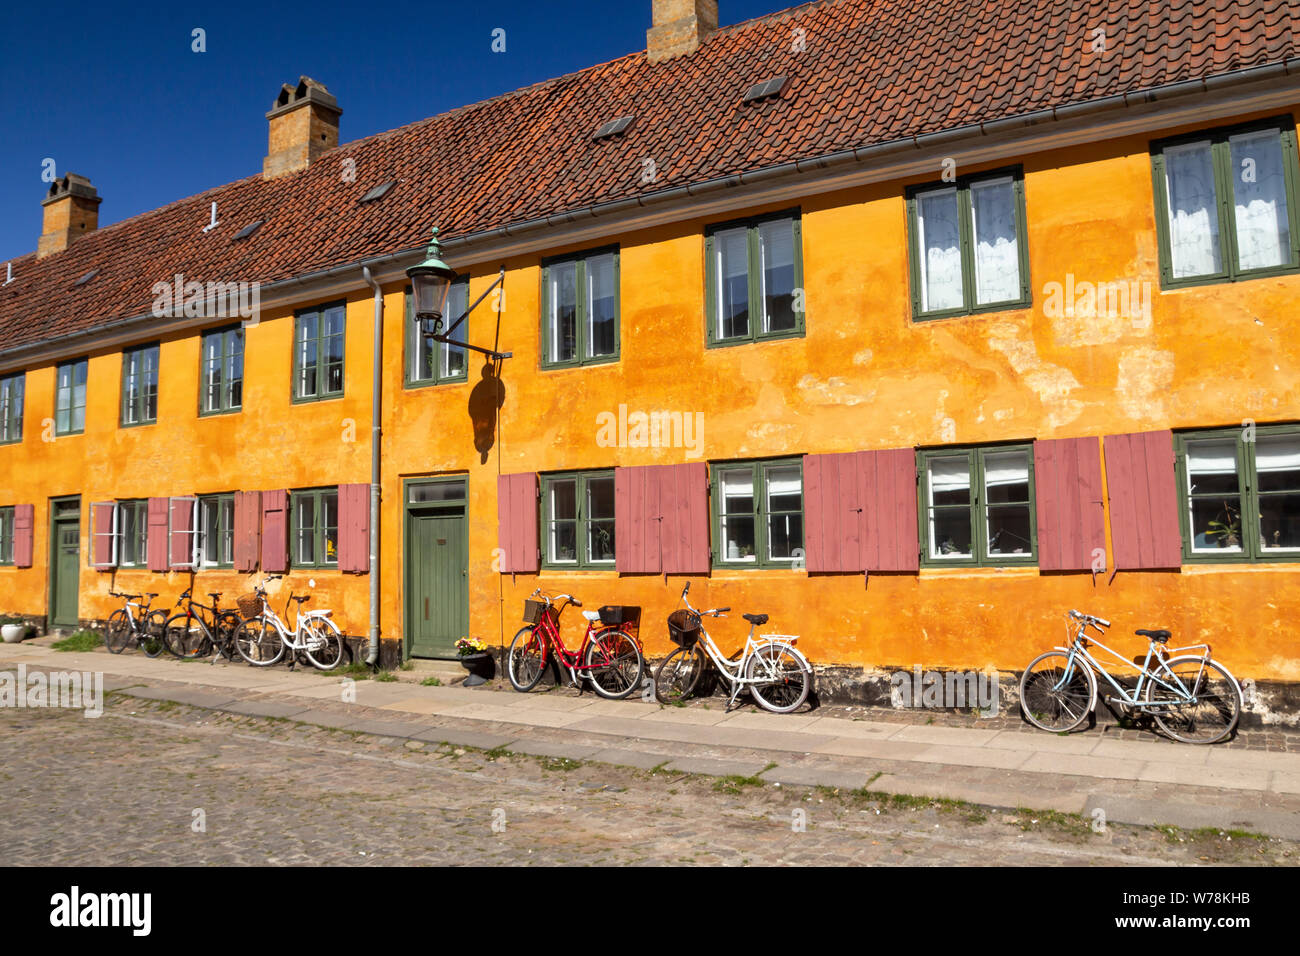 Historic row yellow houses in Nyboder neighborhood in Copenhagen, a former Naval district with bikes in front of the houses Stock Photo